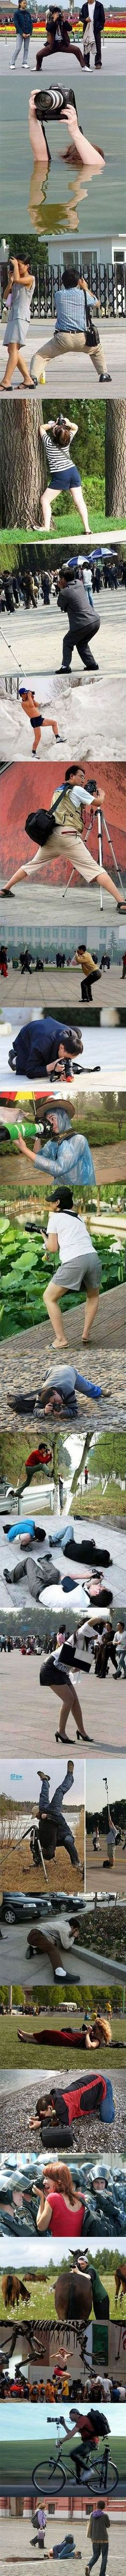 Anything to get the shot.